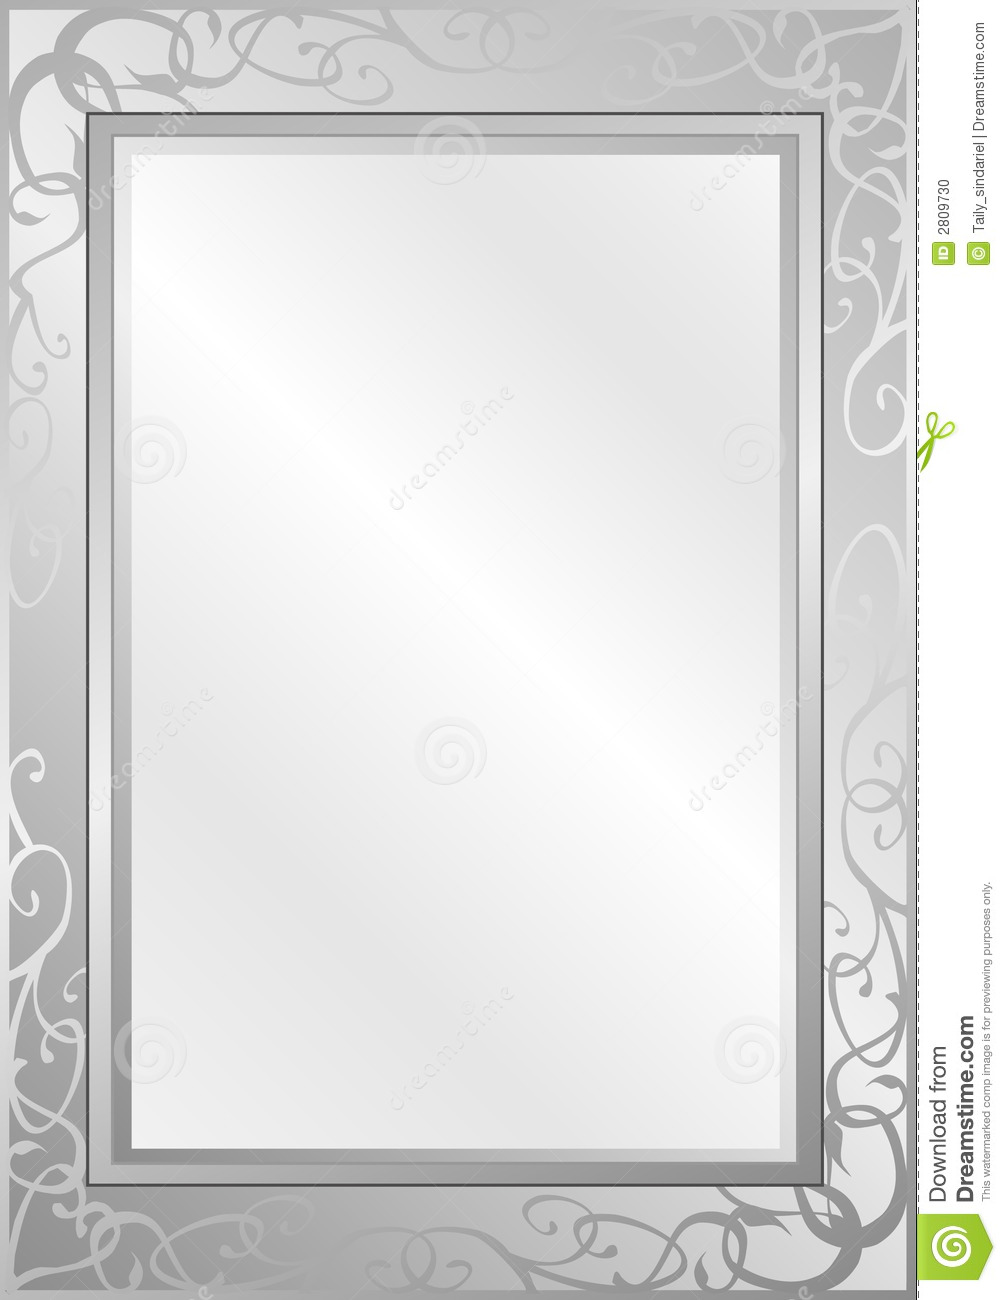 Silver Background Stock Photo - Image: 2809730